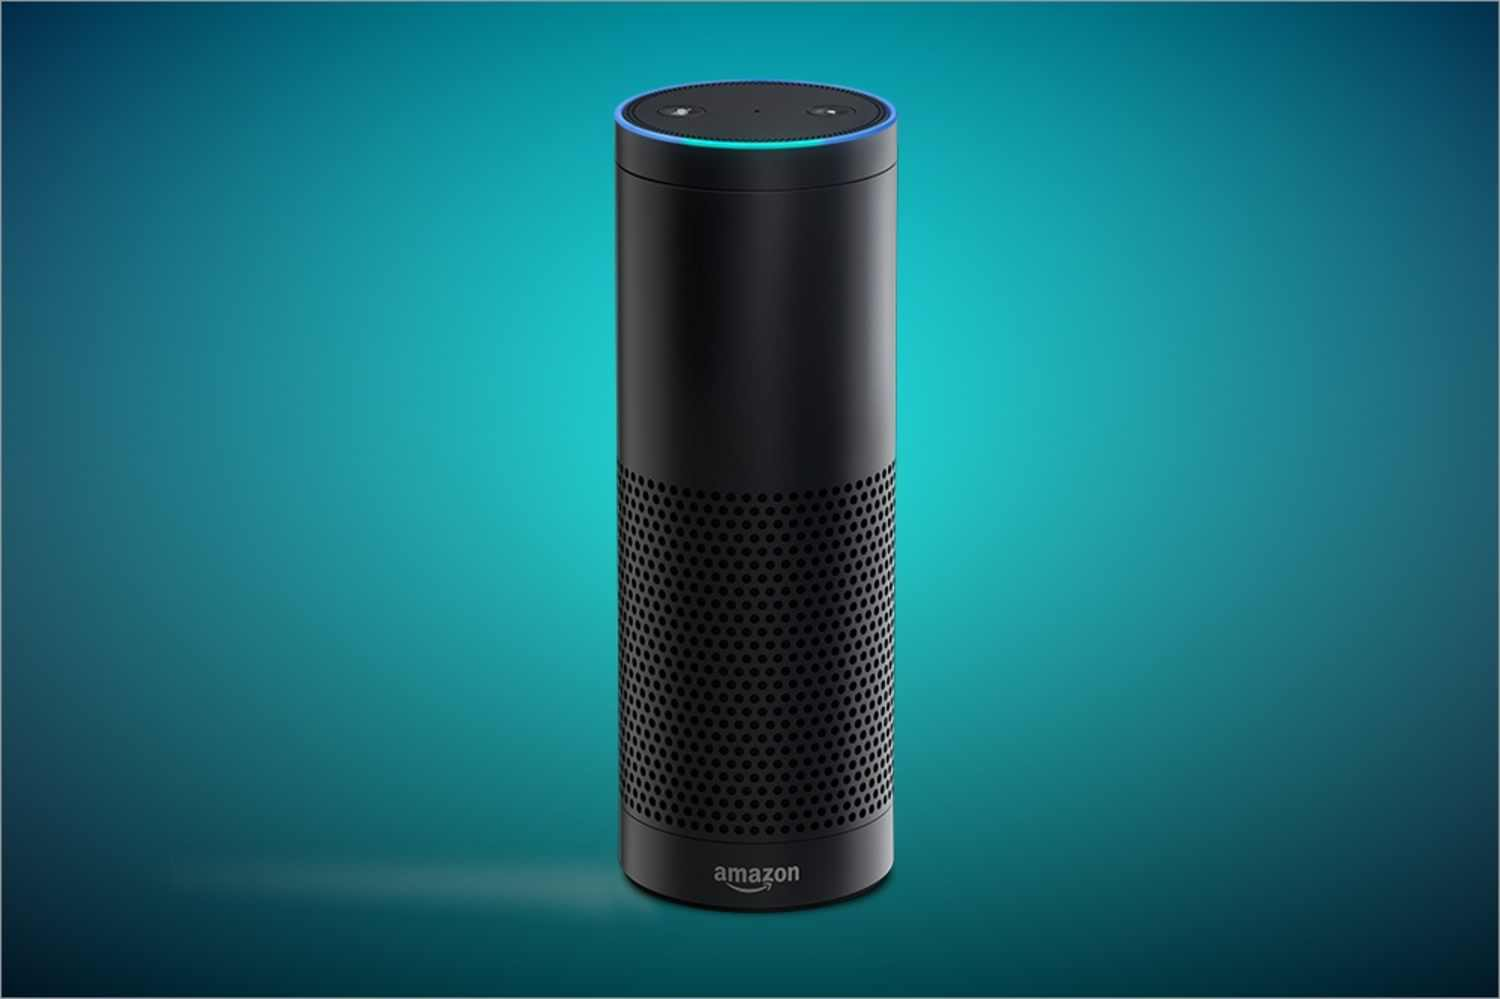 Amazon-Echo-Main-Image.jpg